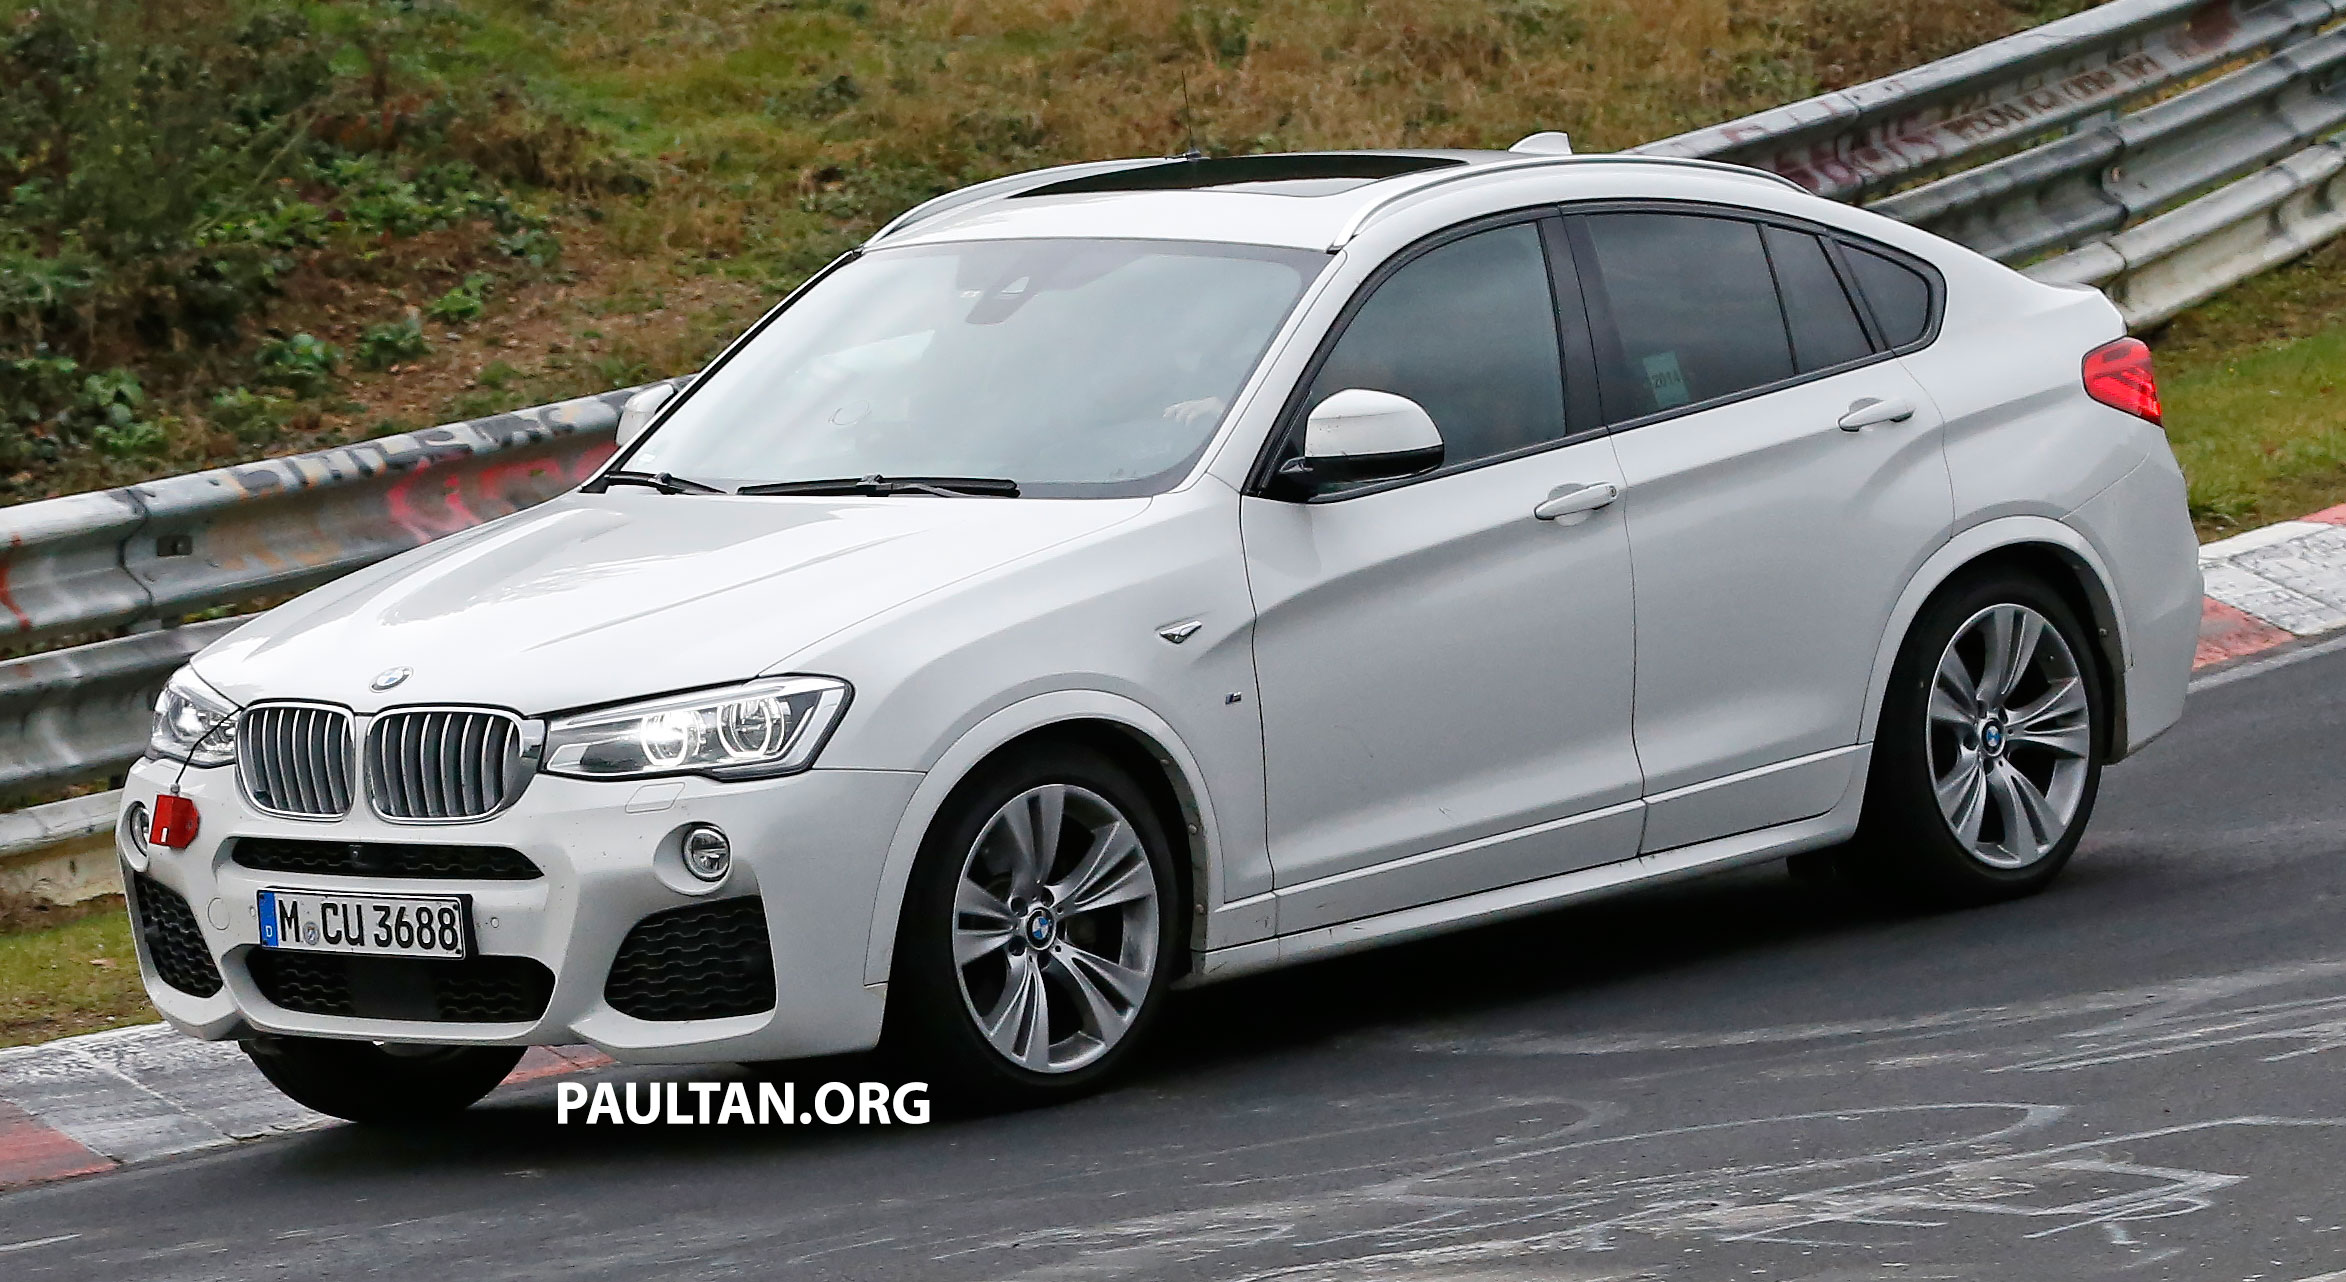 Spyshots bmw x4 m40i caught undisguised image 282706 for Badezimmer 4 x 2 m